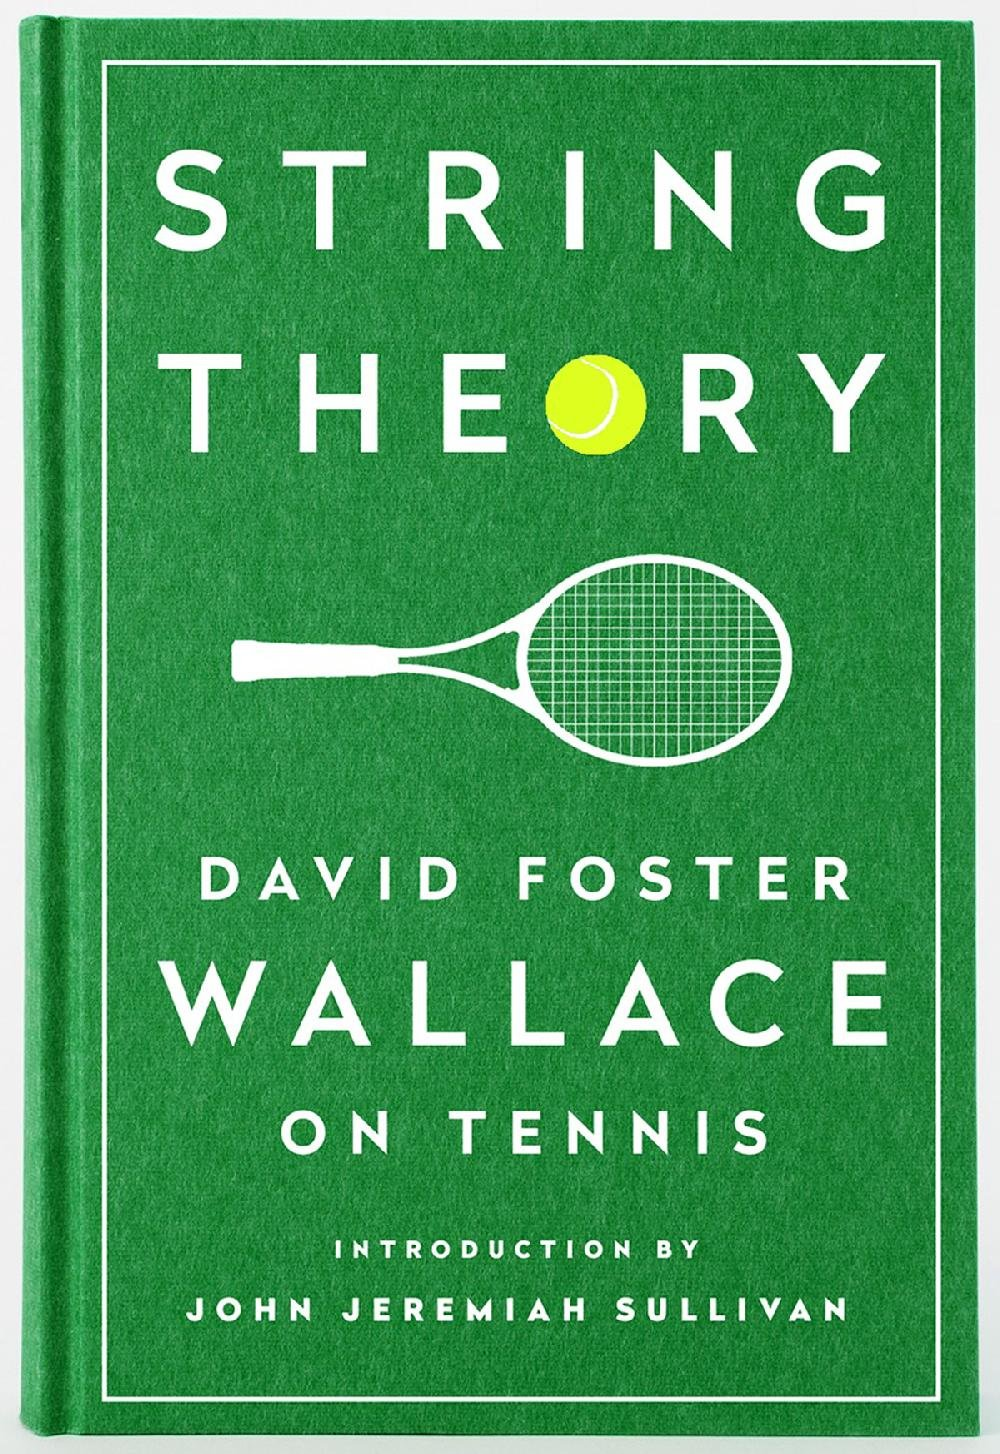 Bounce and spin: David Foster Wallace's tennis essays